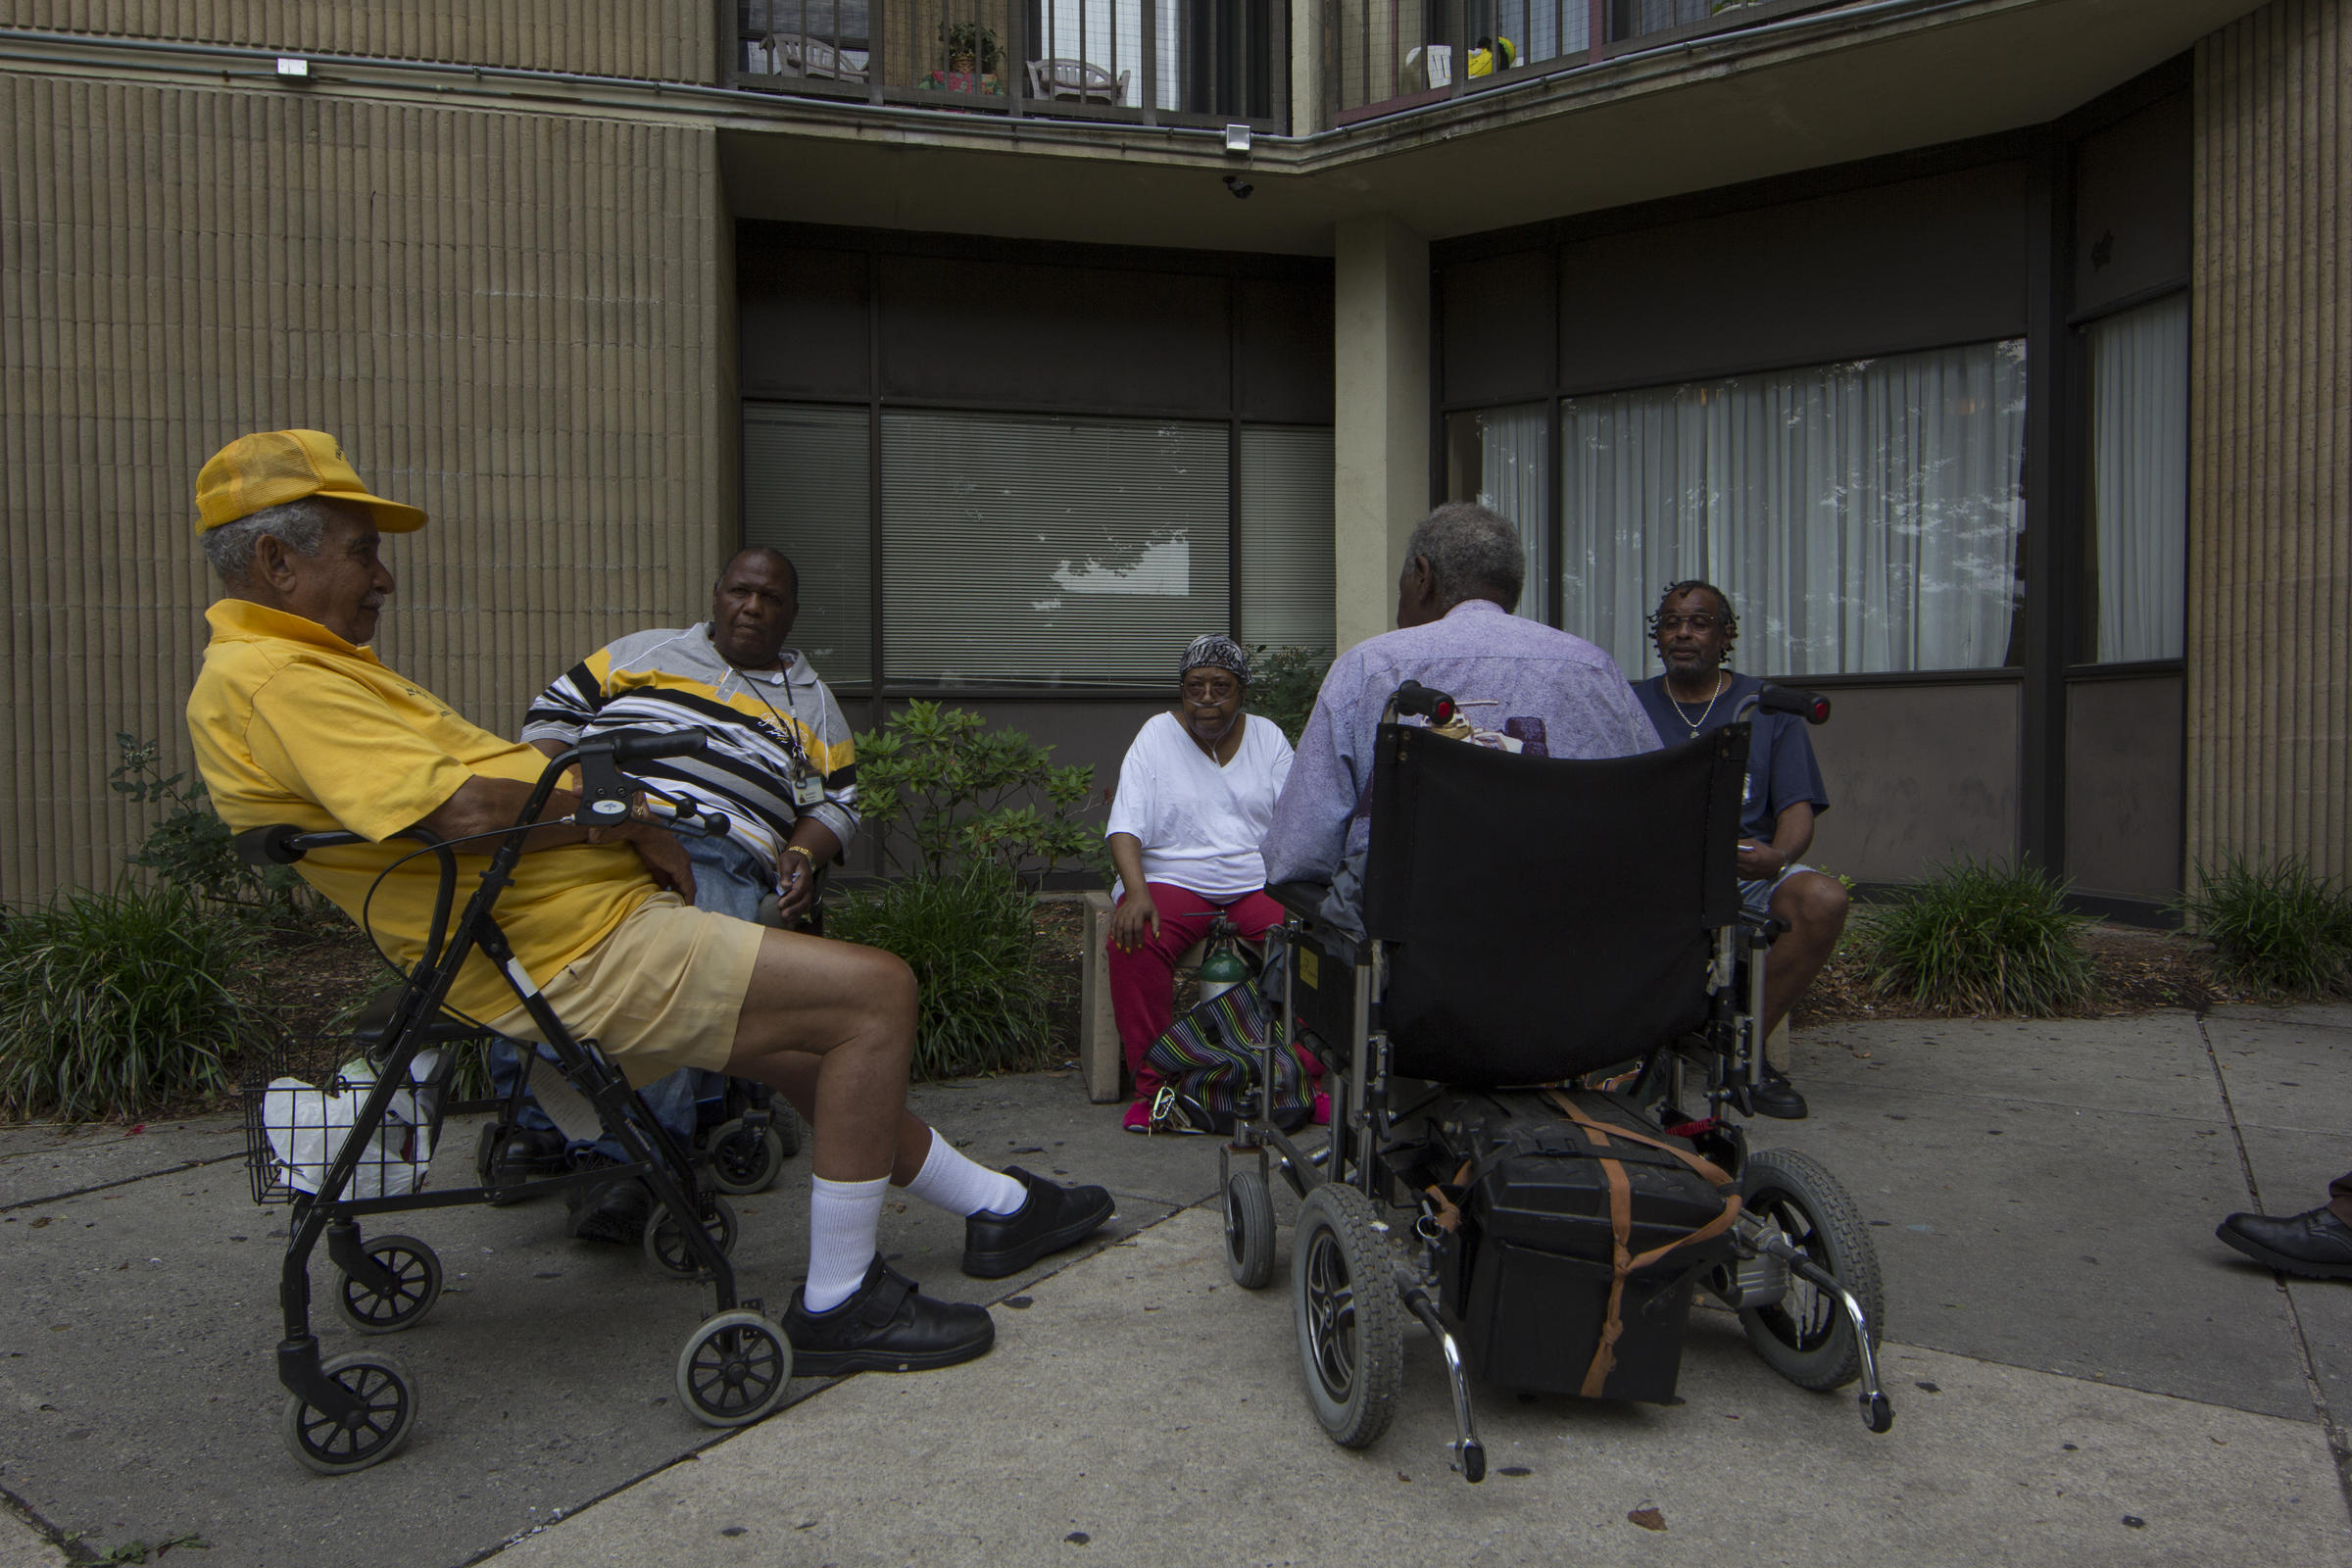 After 80 Years Of Public Housing, The State Of Low Income